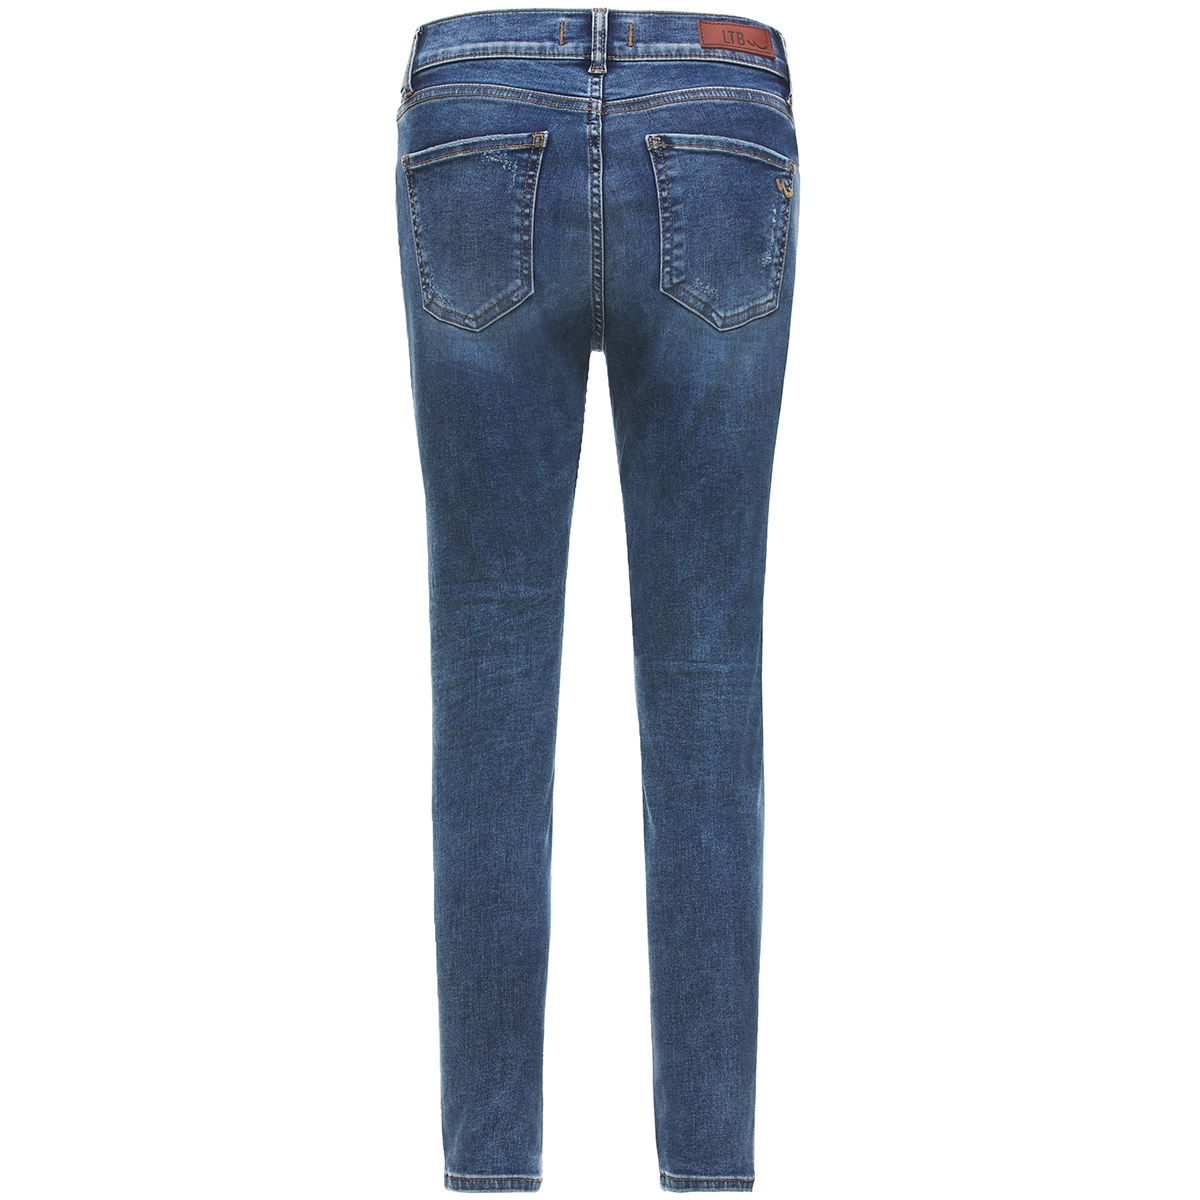 lonia 51032 ltb jeans 52156 mirage wash